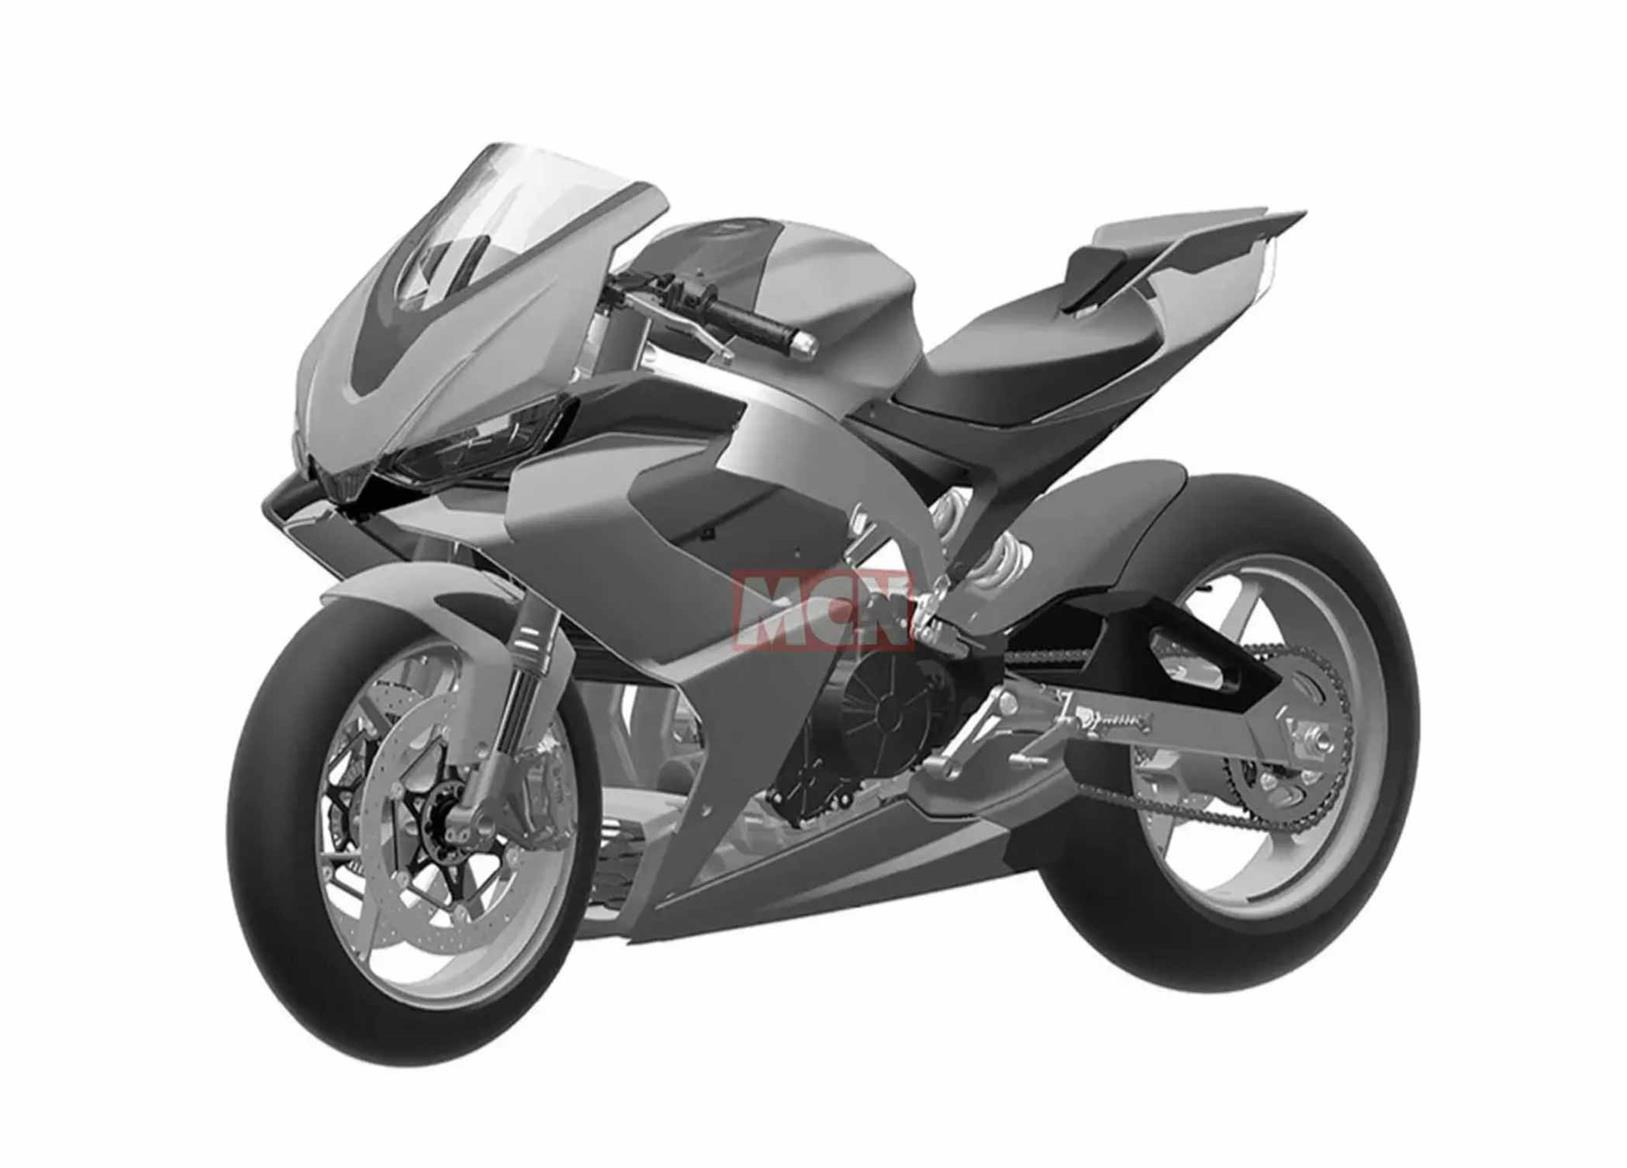 A frontal view of the Aprilia RS660 design patent